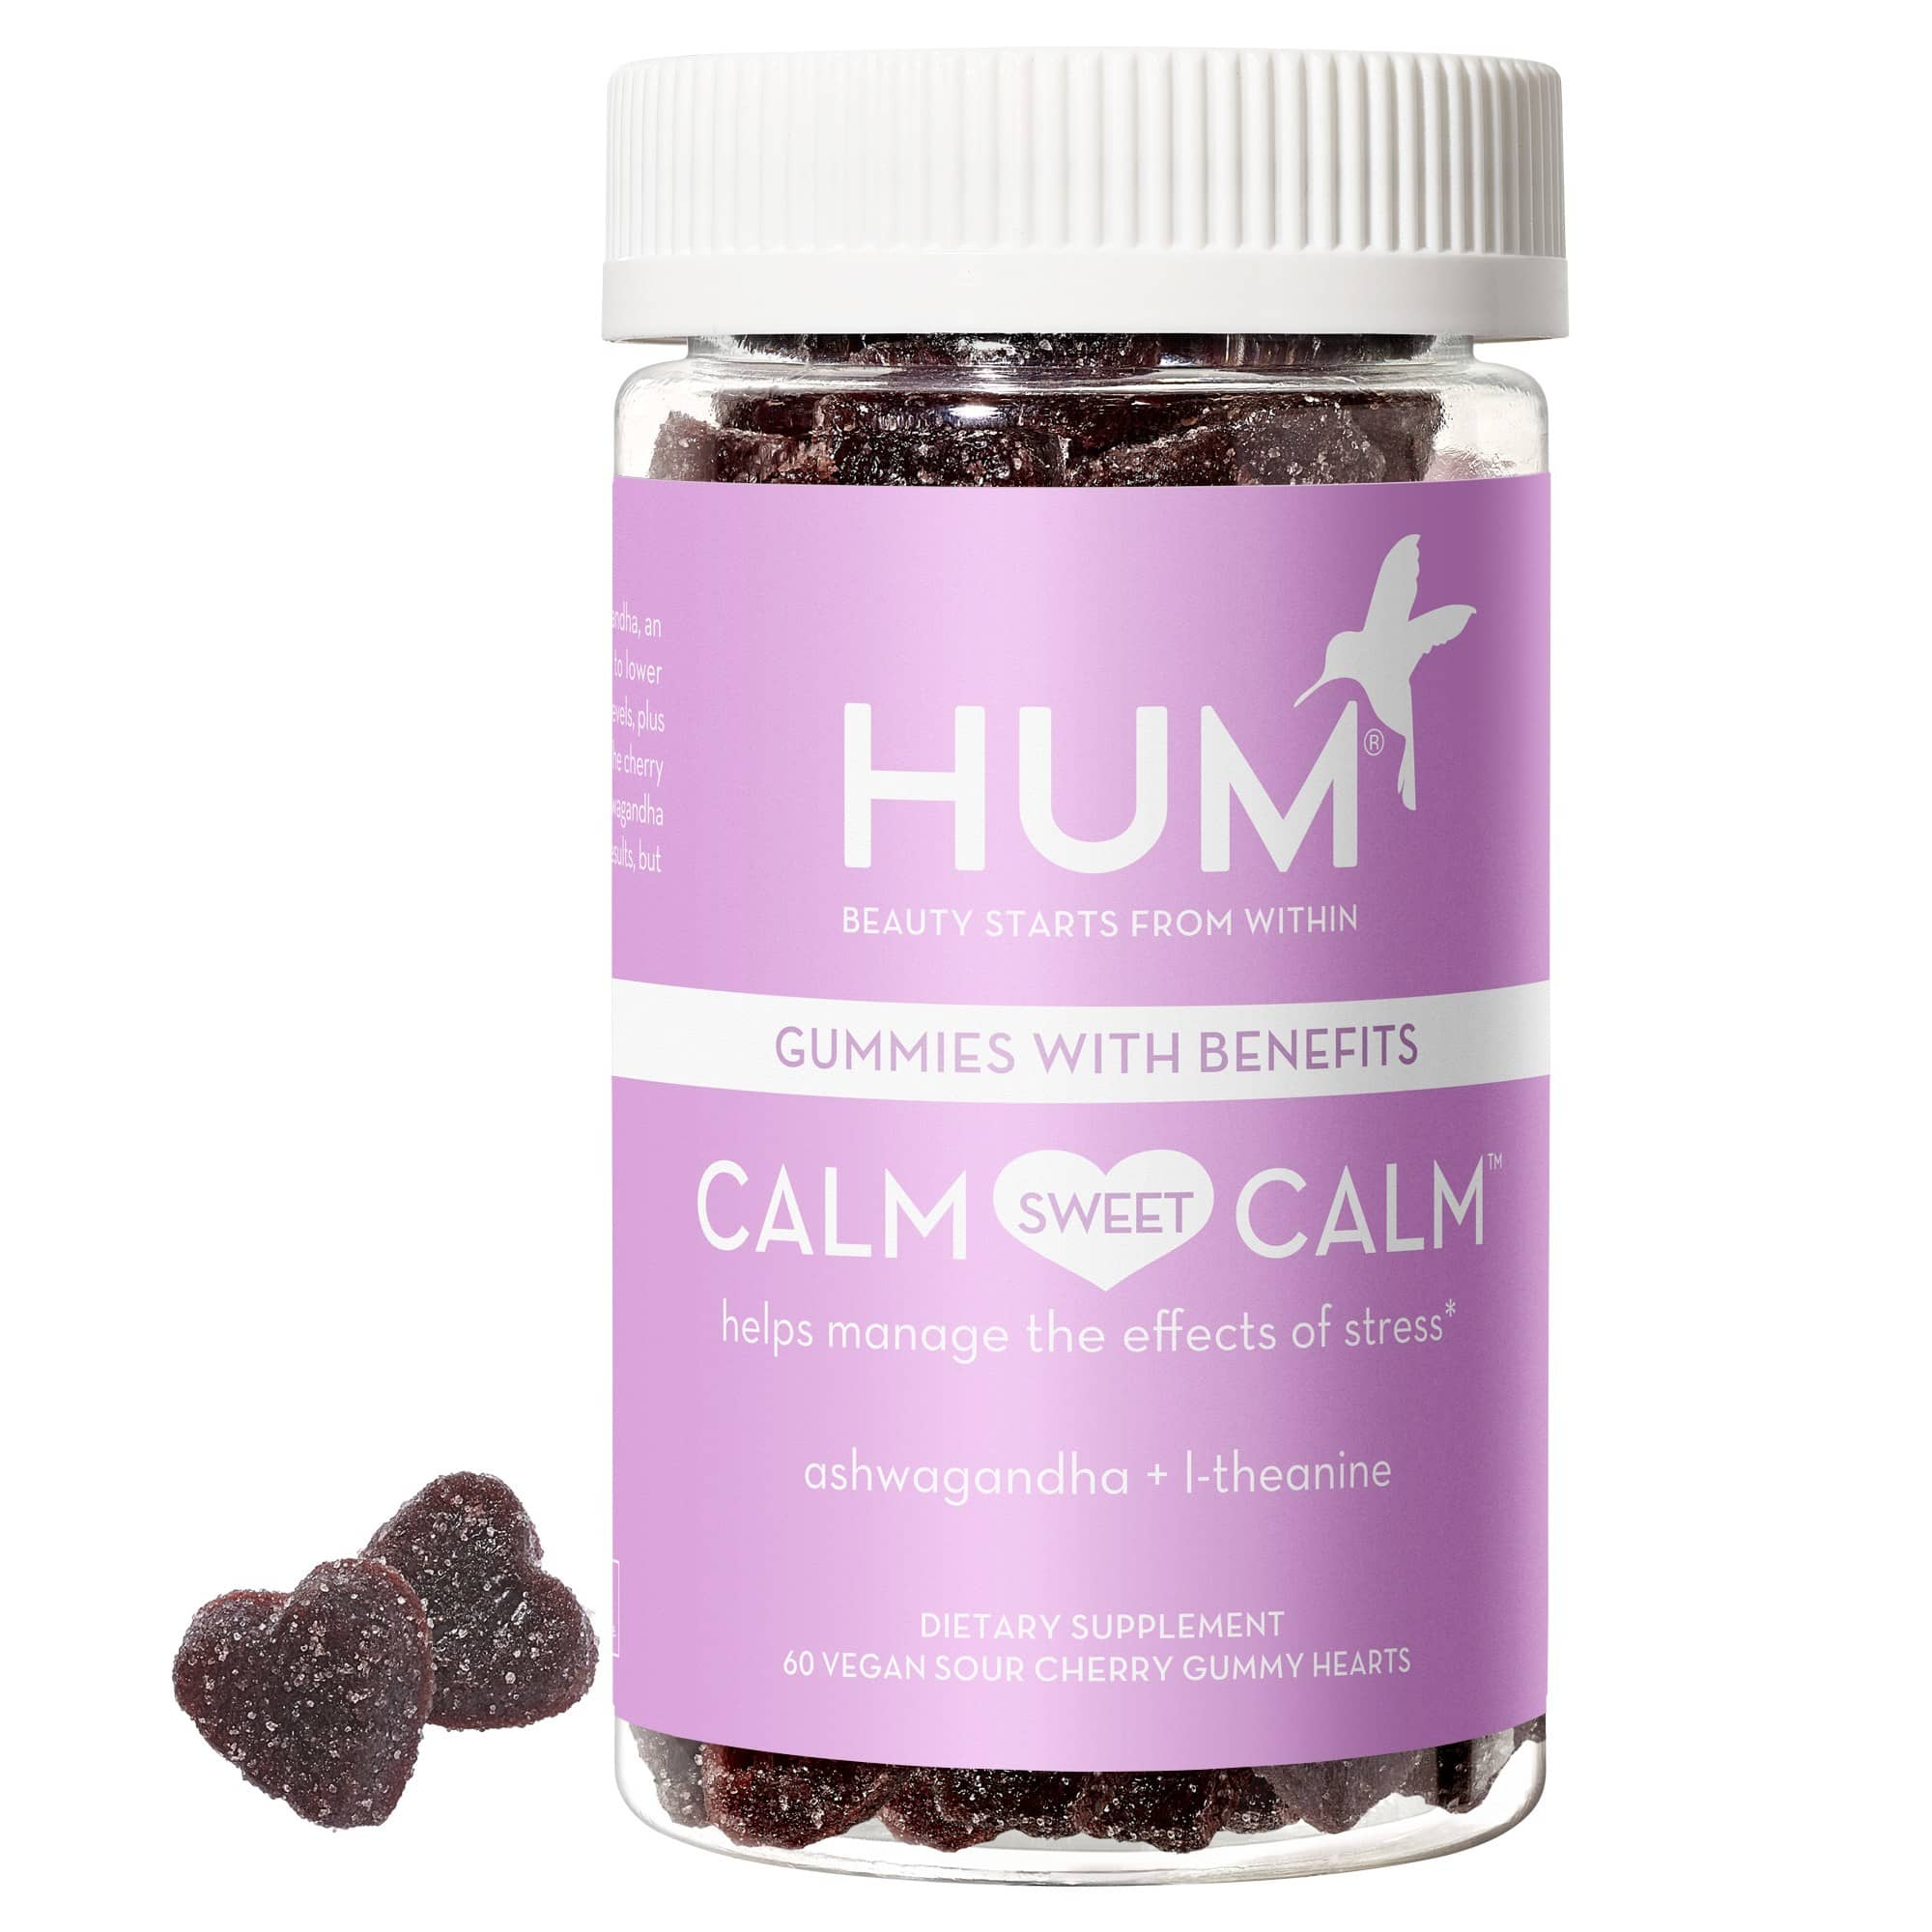 HUM-Nutrition-Calm-sweet-Calm-ashwagandha-stress-gummies